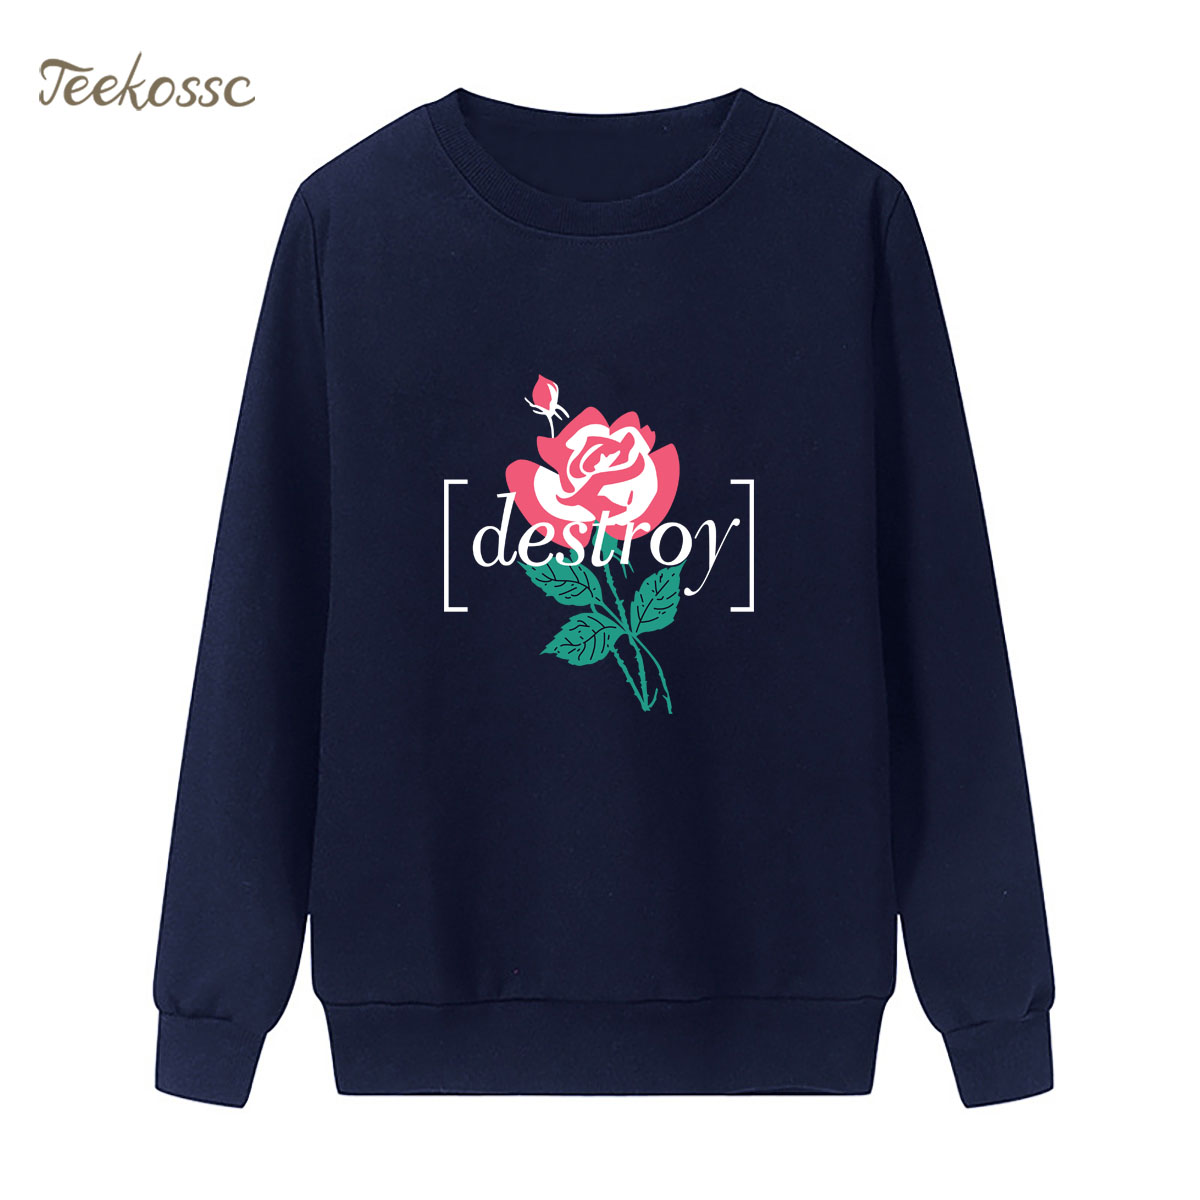 Destroy Flower Sweatshirt Printing Hoodie 2018 Brand Winter Autumn Women Lasdies Pullover Fleece Warm Loose Casual Streetwear